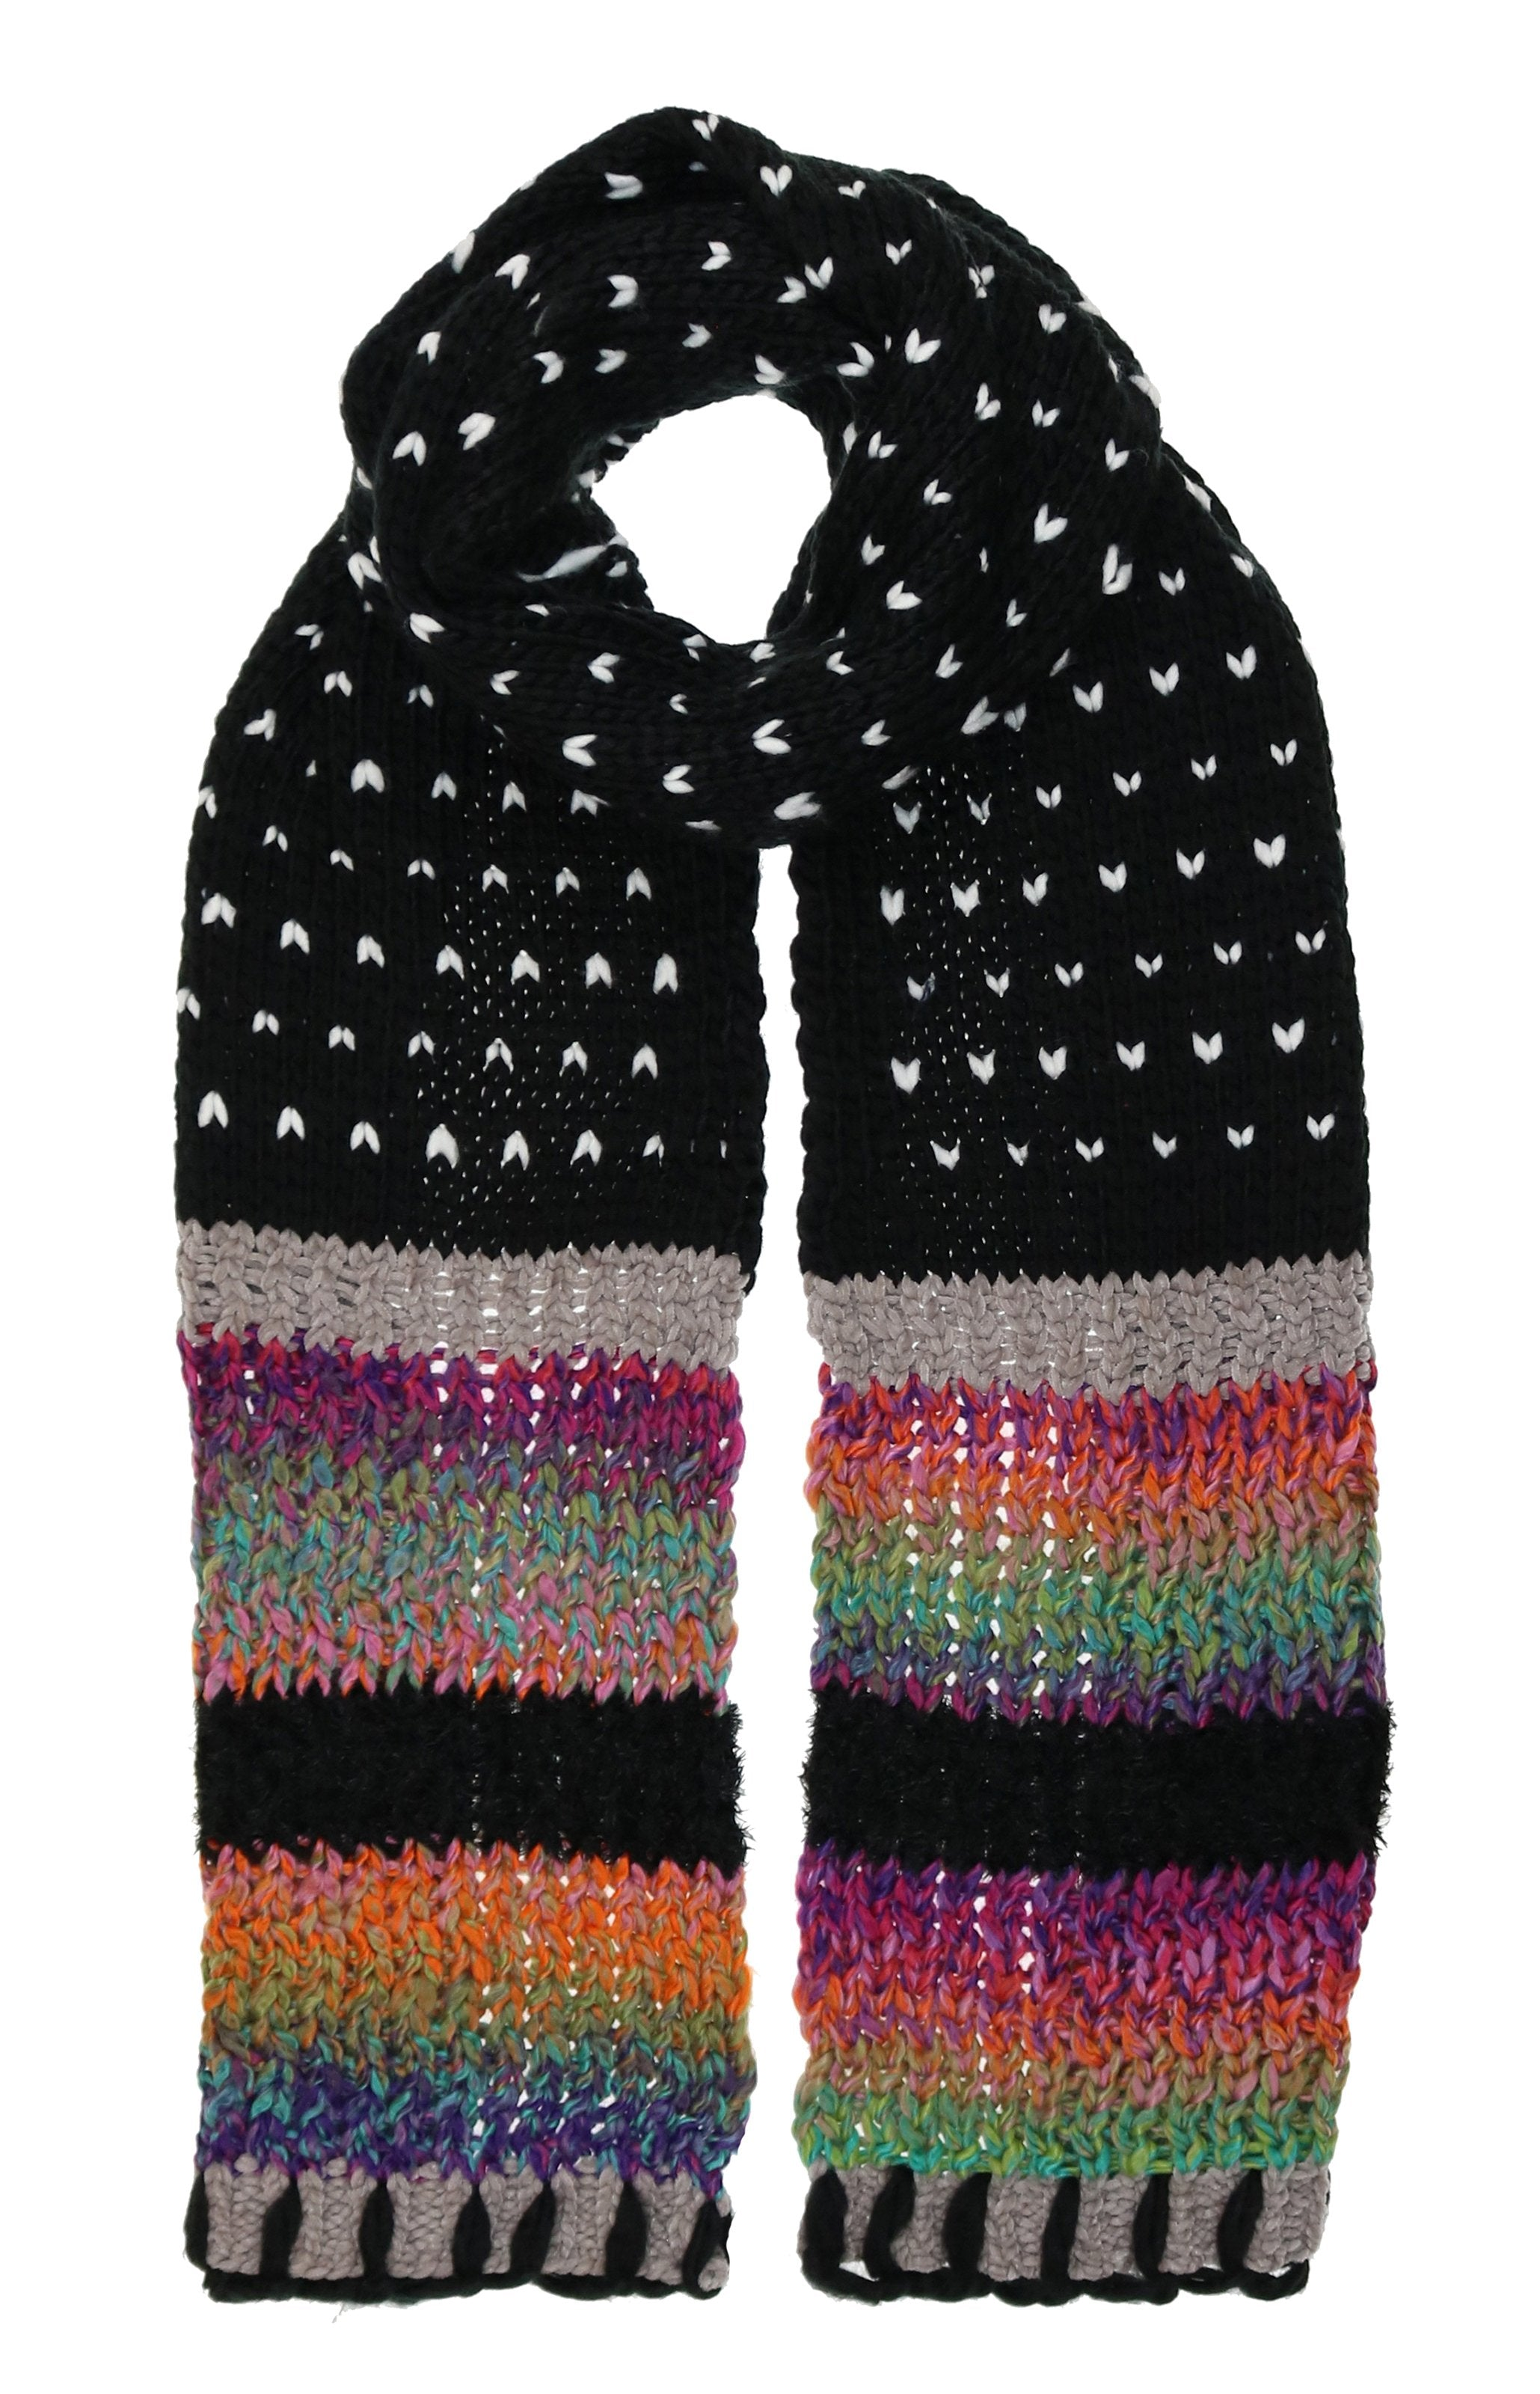 Birdseye Mixed Media Acrylic Polyester Knit Scarf